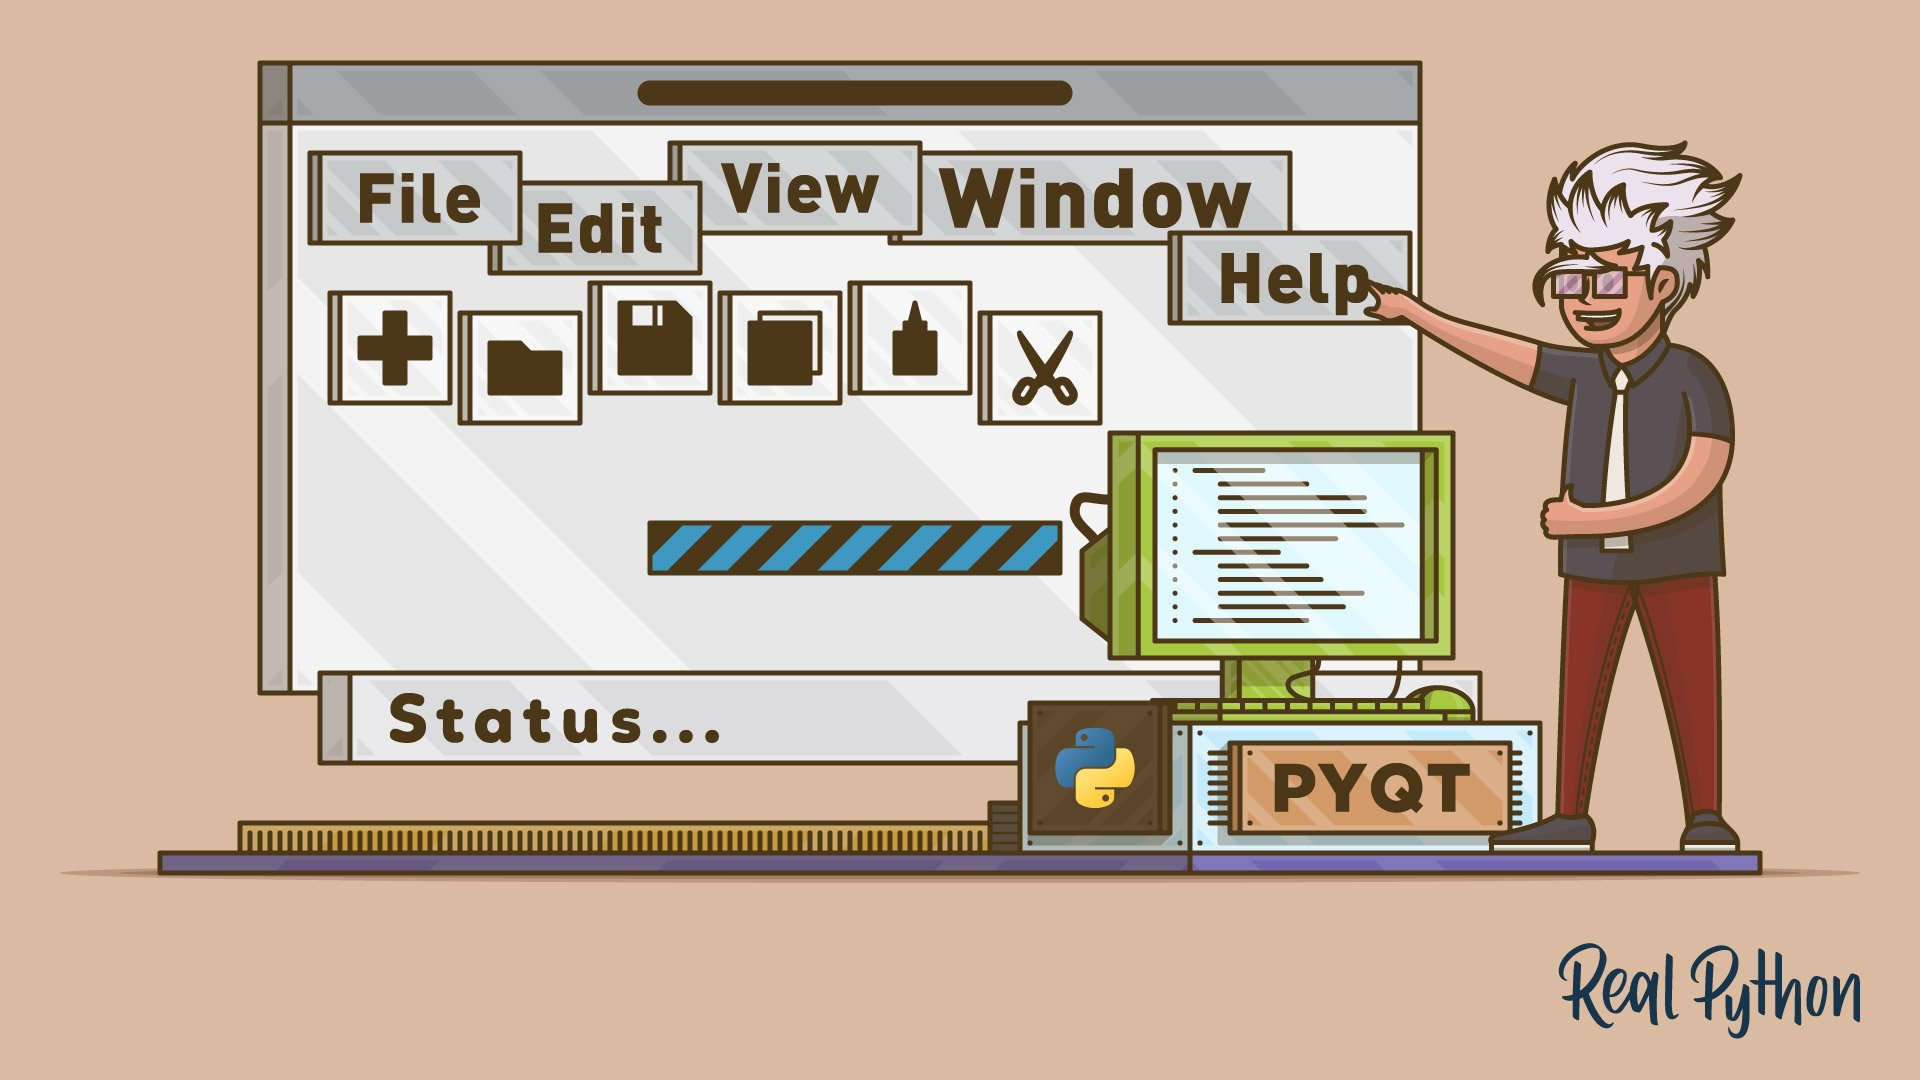 Python and PyQt: Creating Menus, Toolbars, and Status Bars